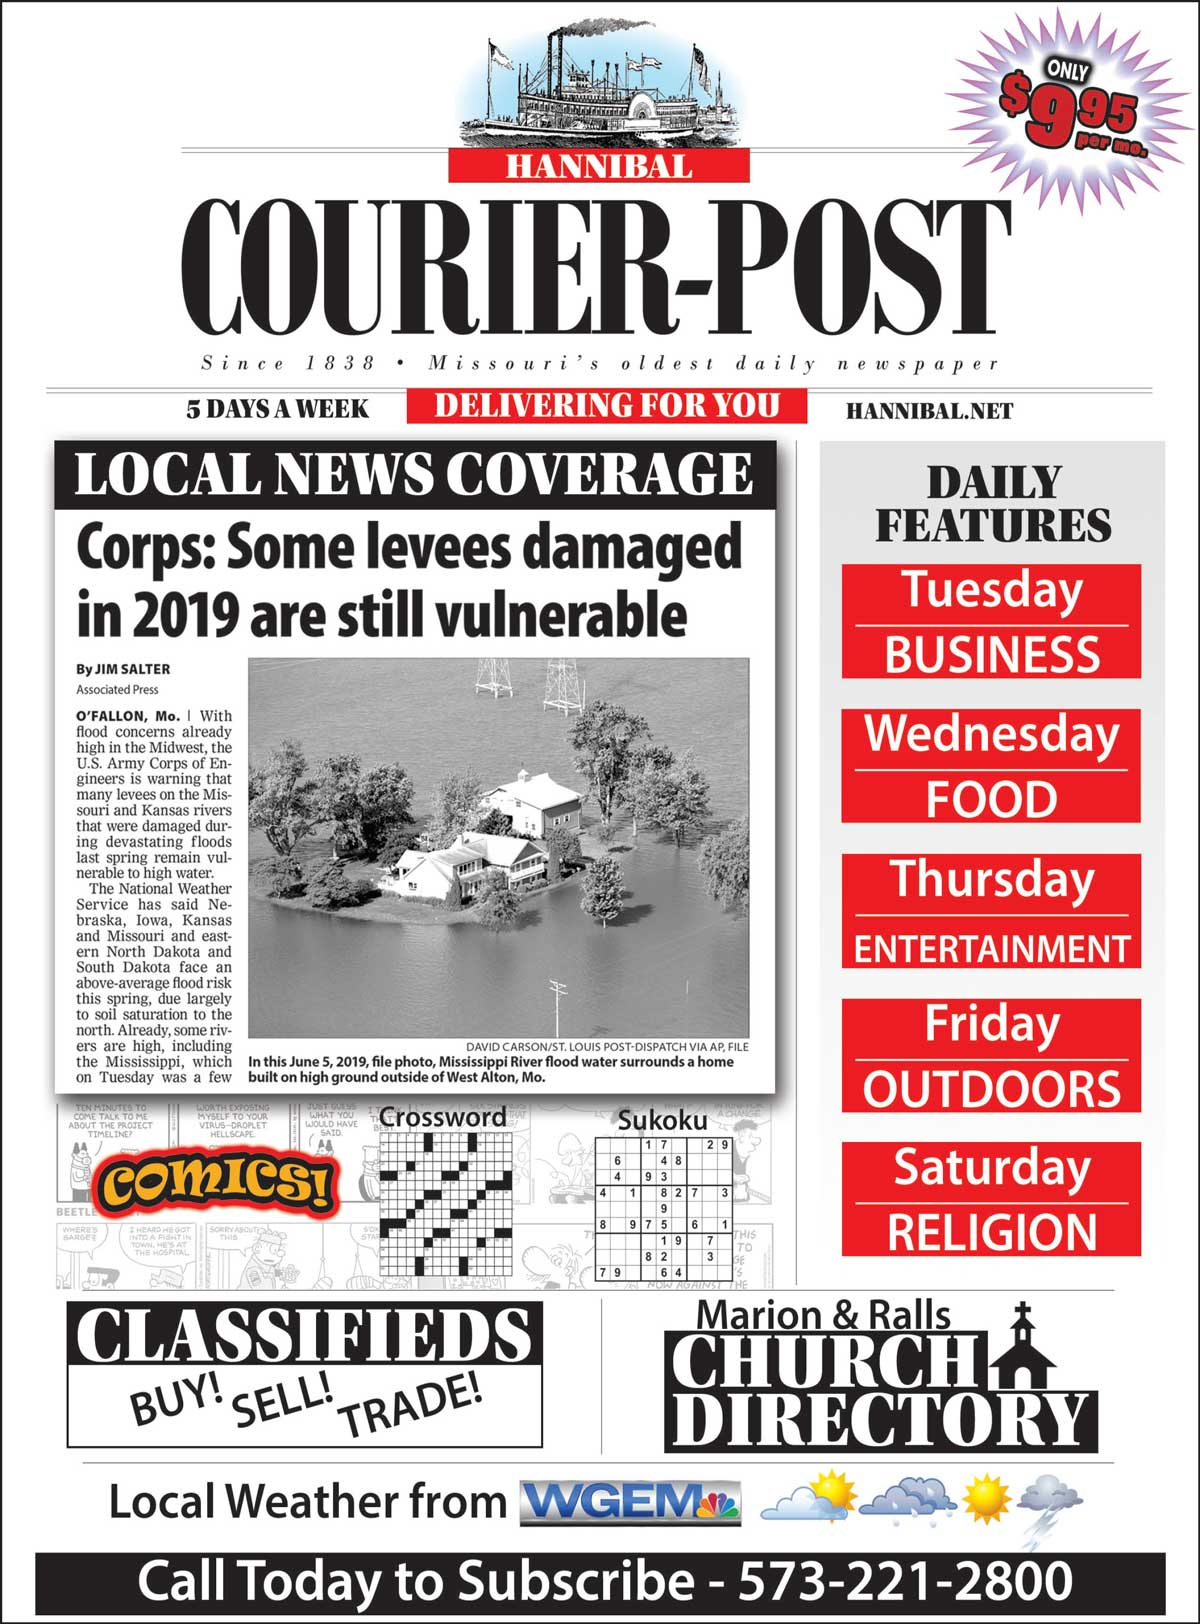 Hannibal Courier-Post ad - subscribe